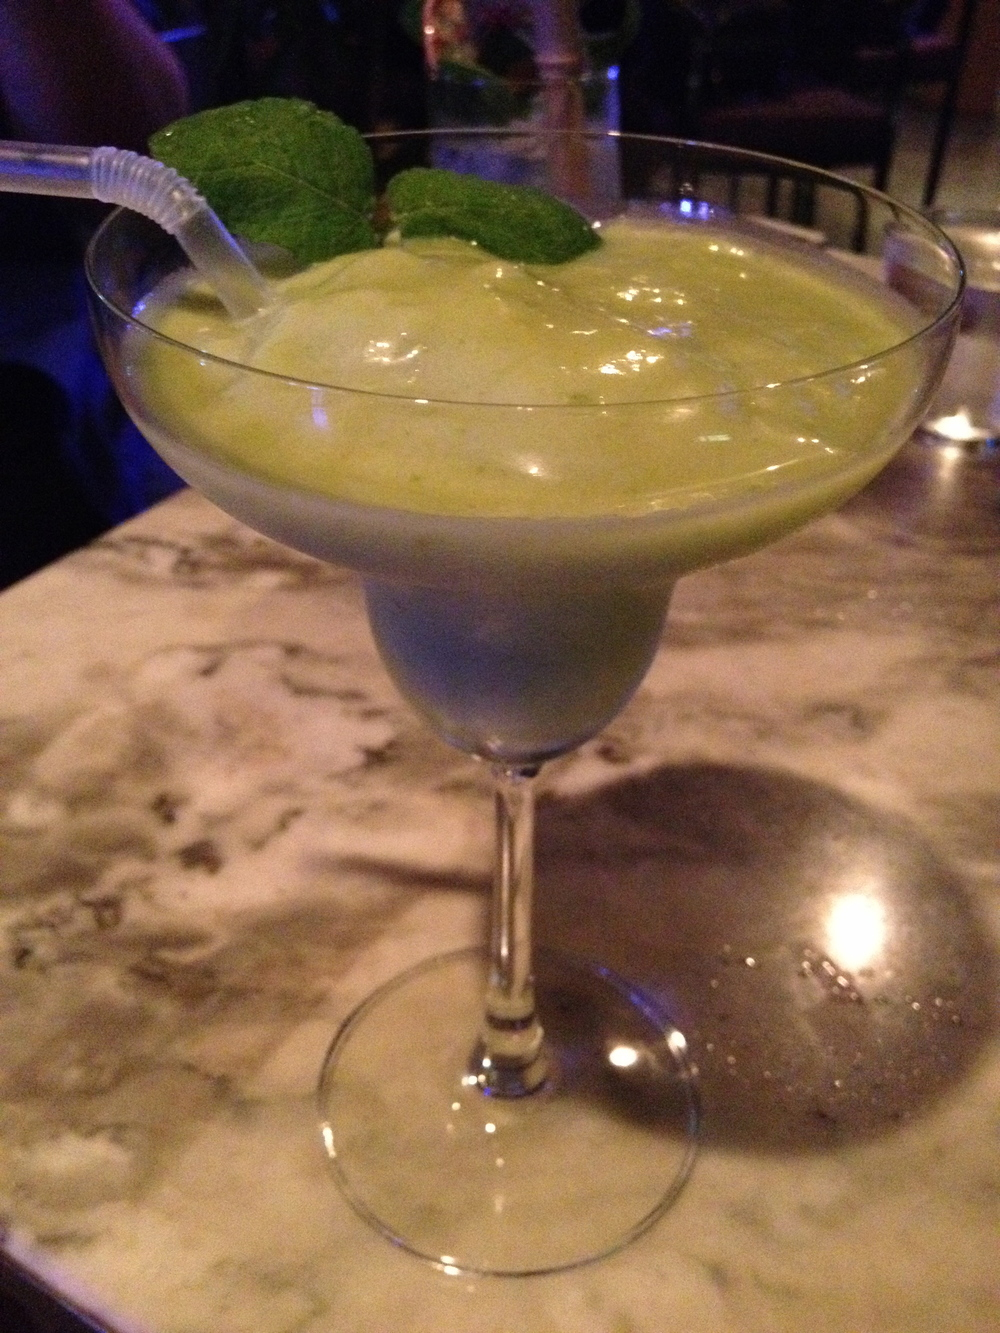 Avocado Lime Margarita - not as flavourful as I would've hoped. I prefer and recommend the Key Lime one.